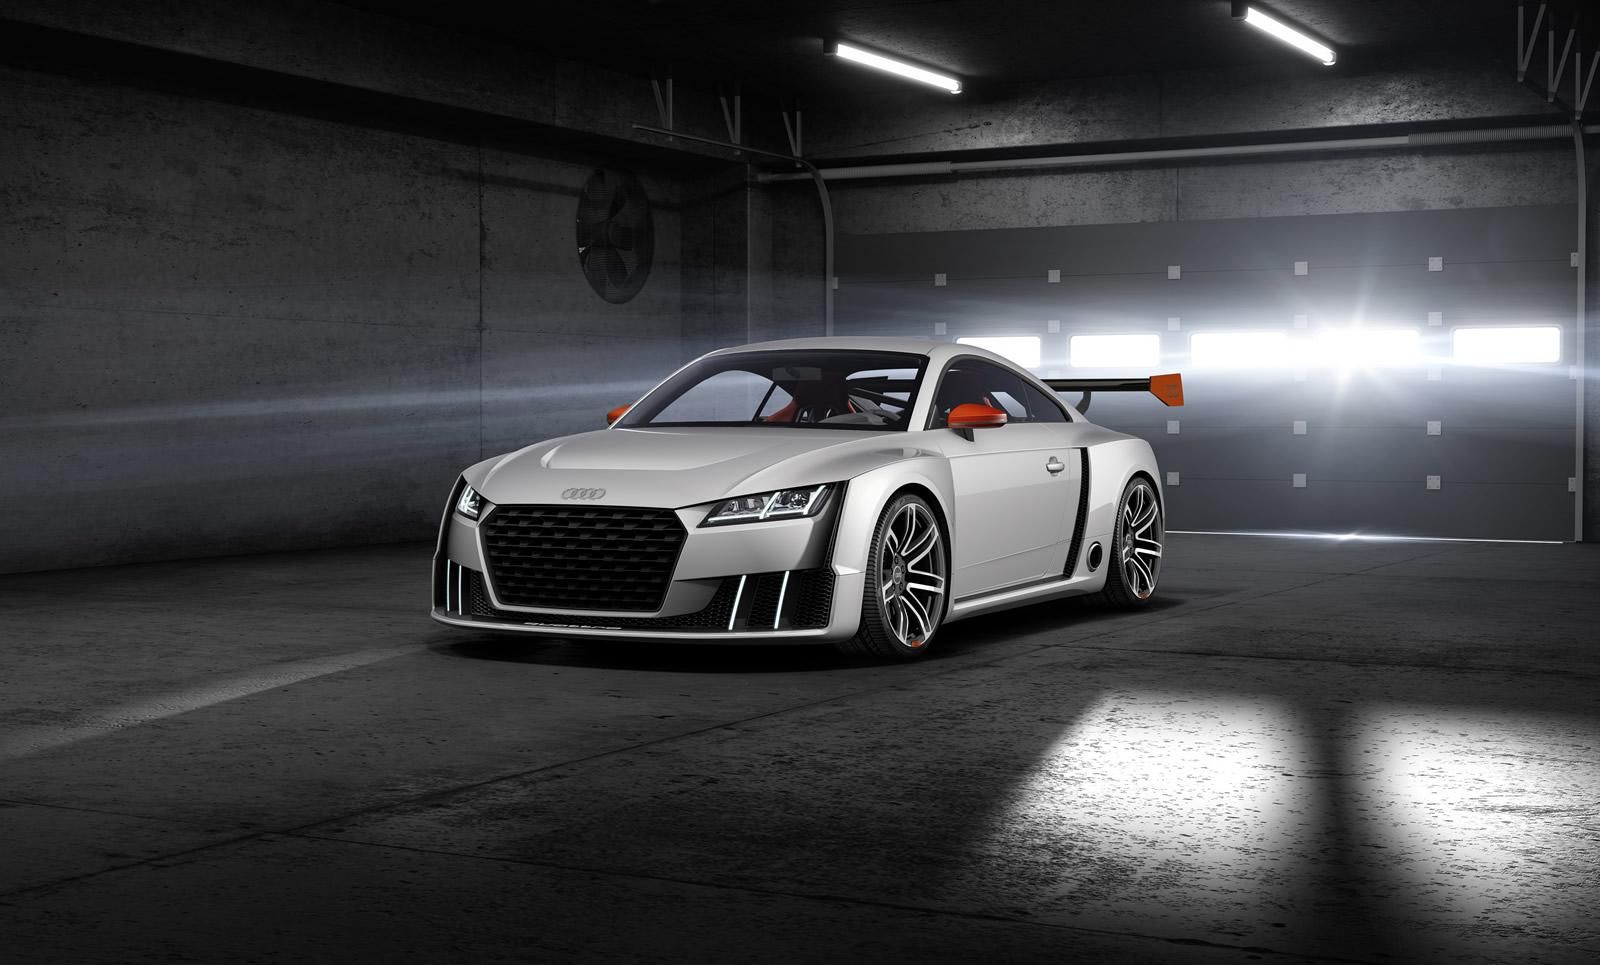 Audi TT clubsport turbo concept with 2.5